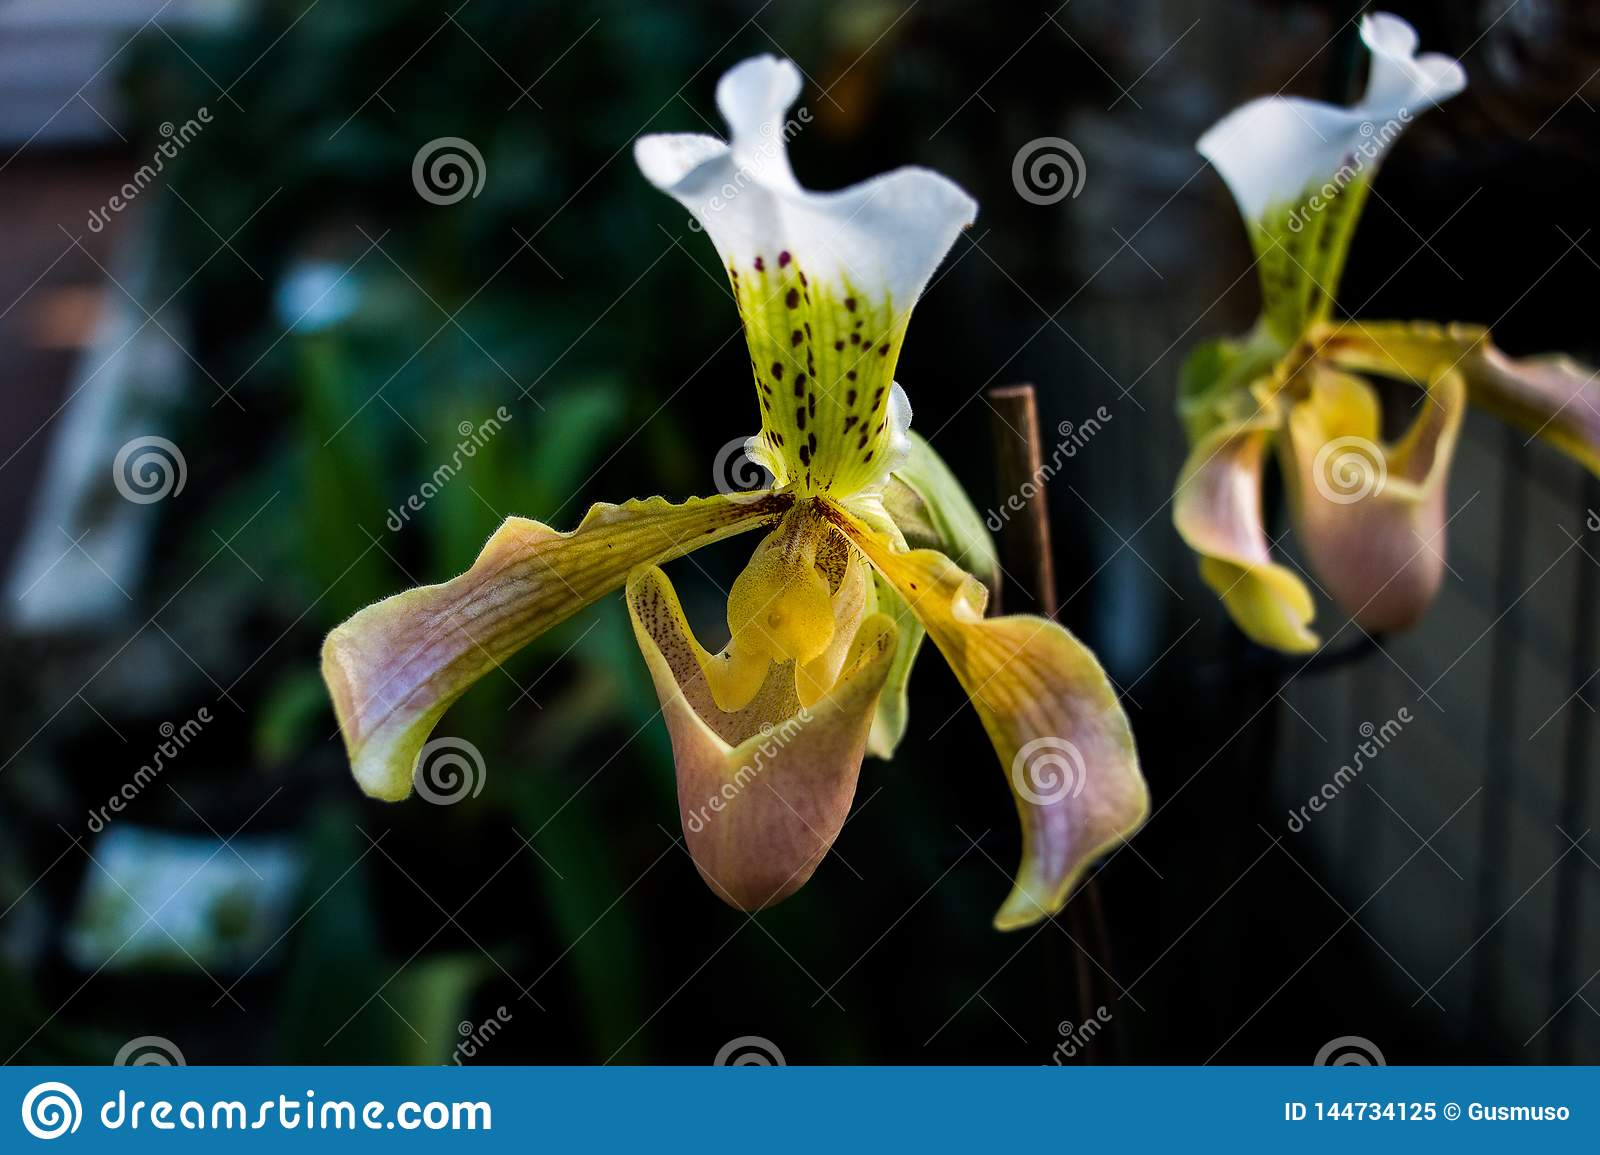 Lady slipper orchid, Cypripedioideae Paphiopedilum, in foreground